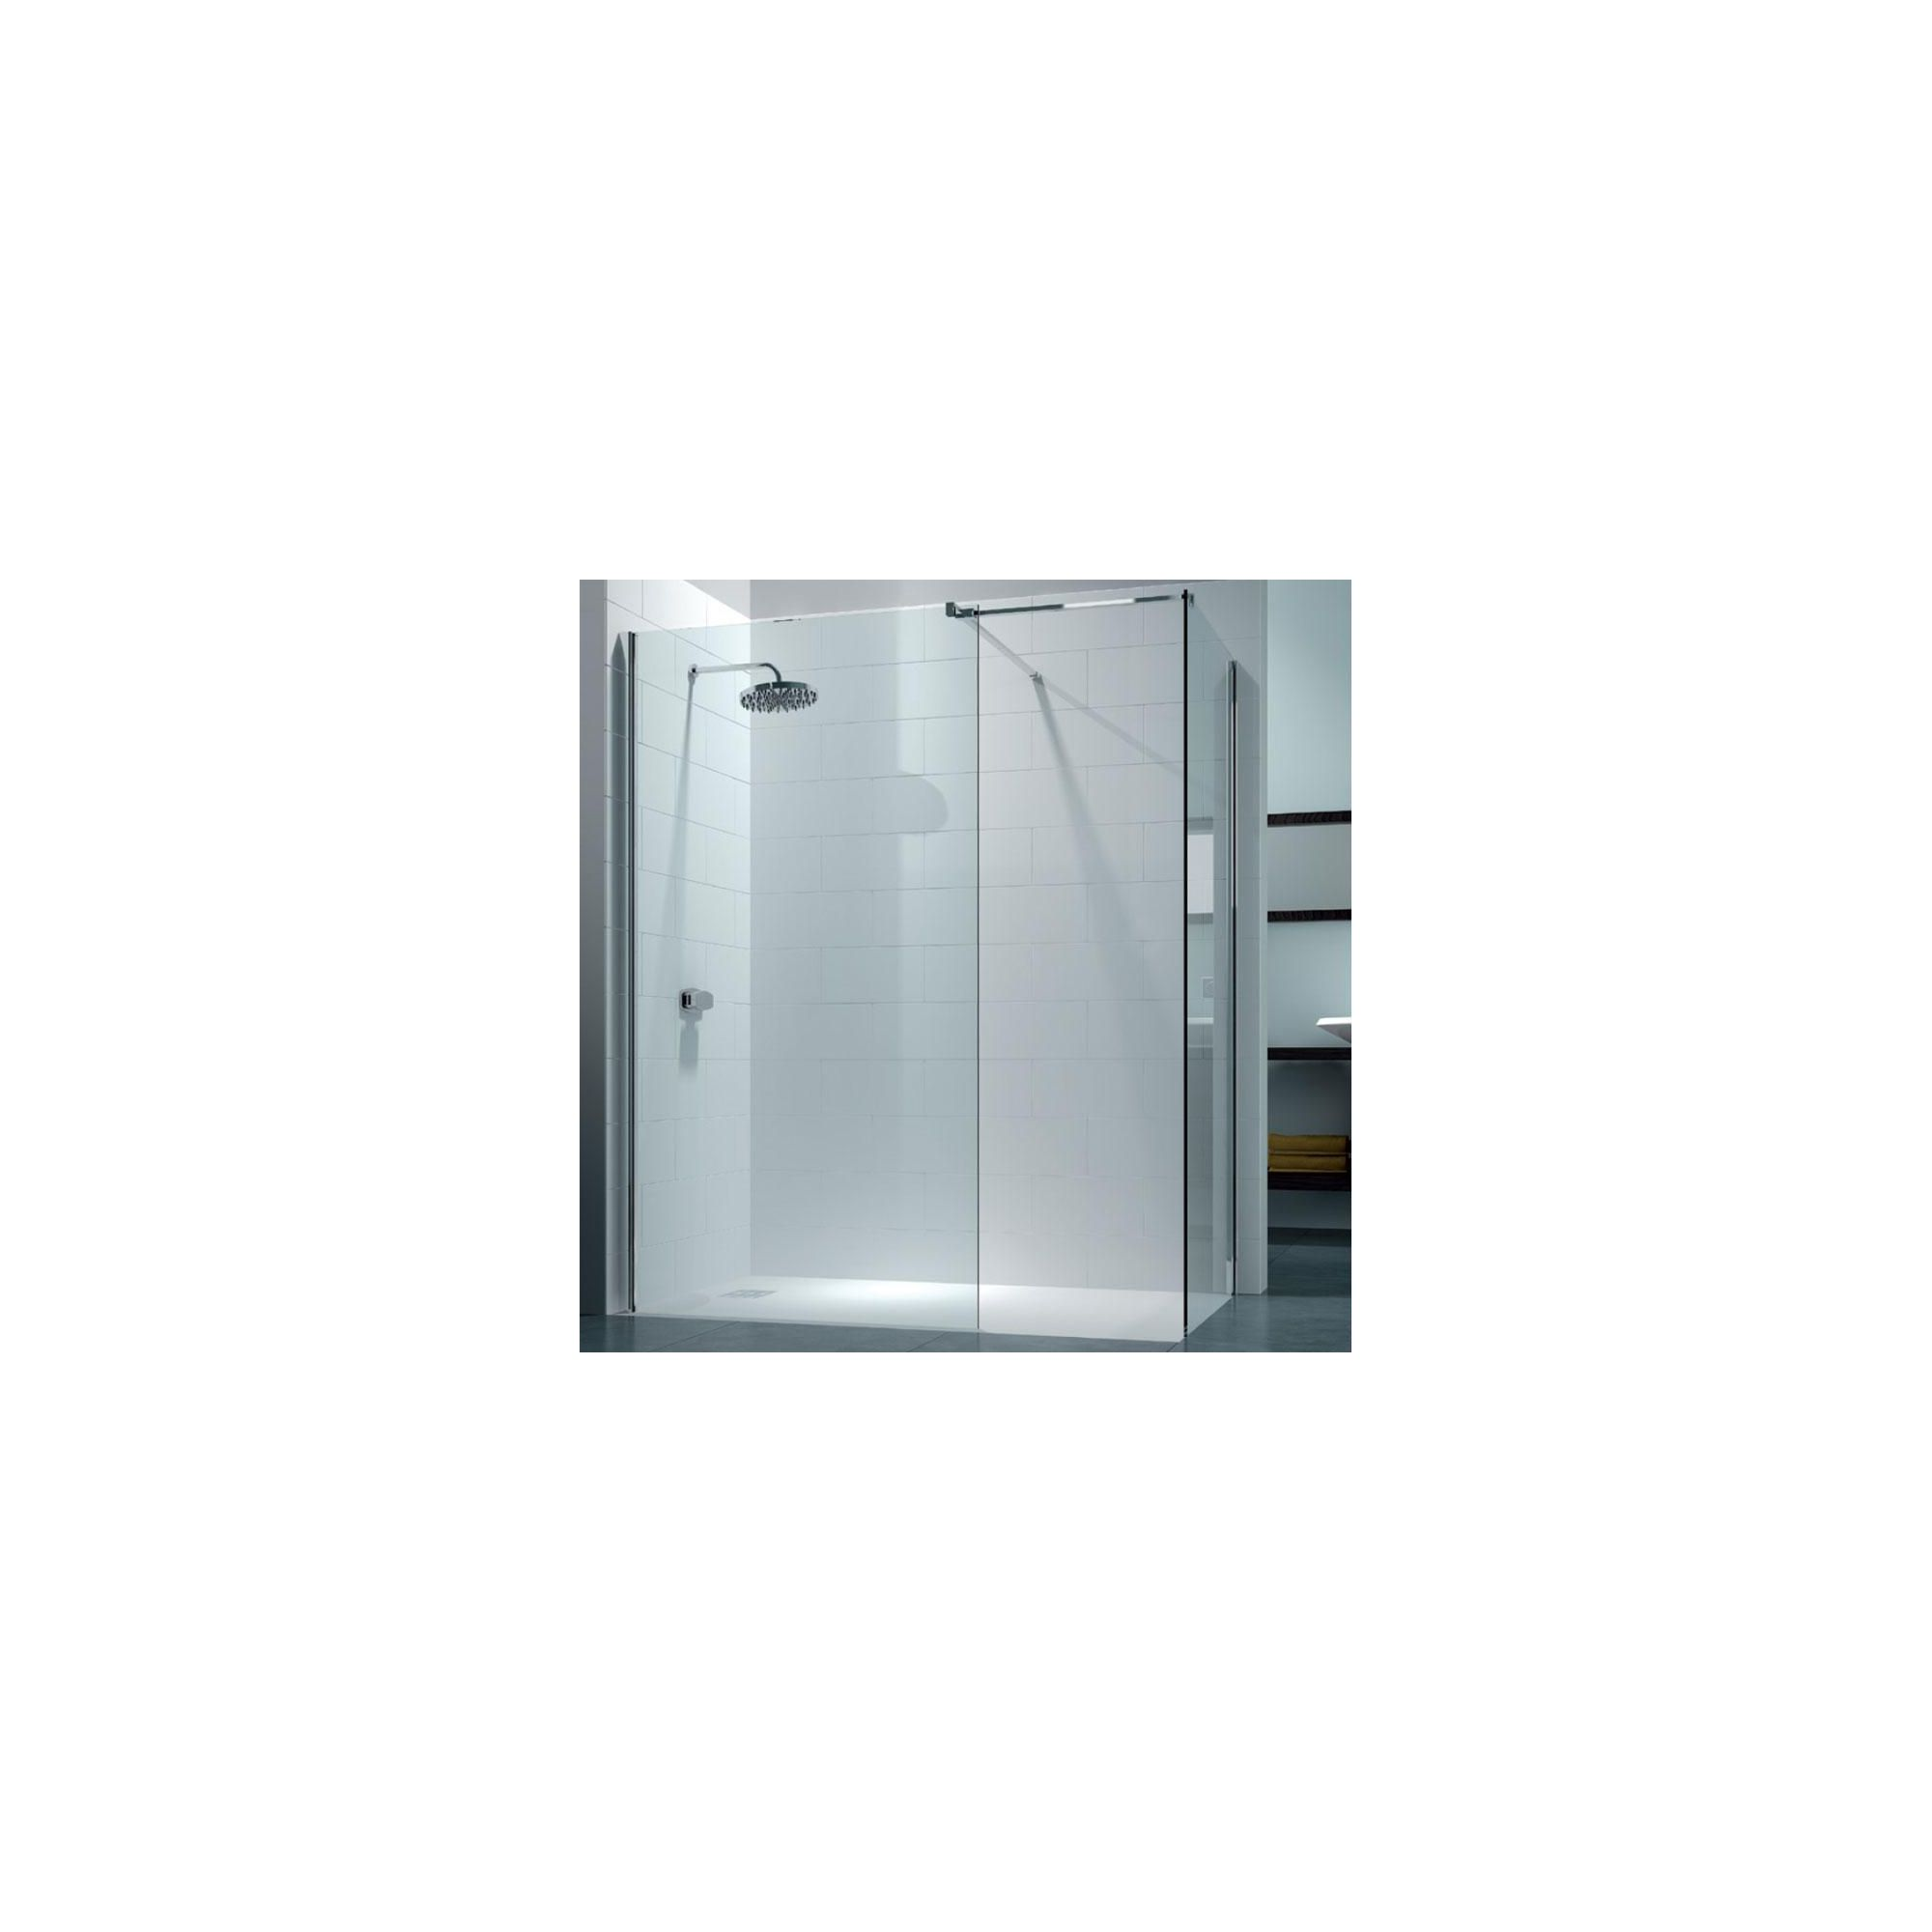 Merlyn Series 8 Walk-In Shower Enclosure, 1600mm x 800mm, 8mm Glass, excluding Tray at Tesco Direct